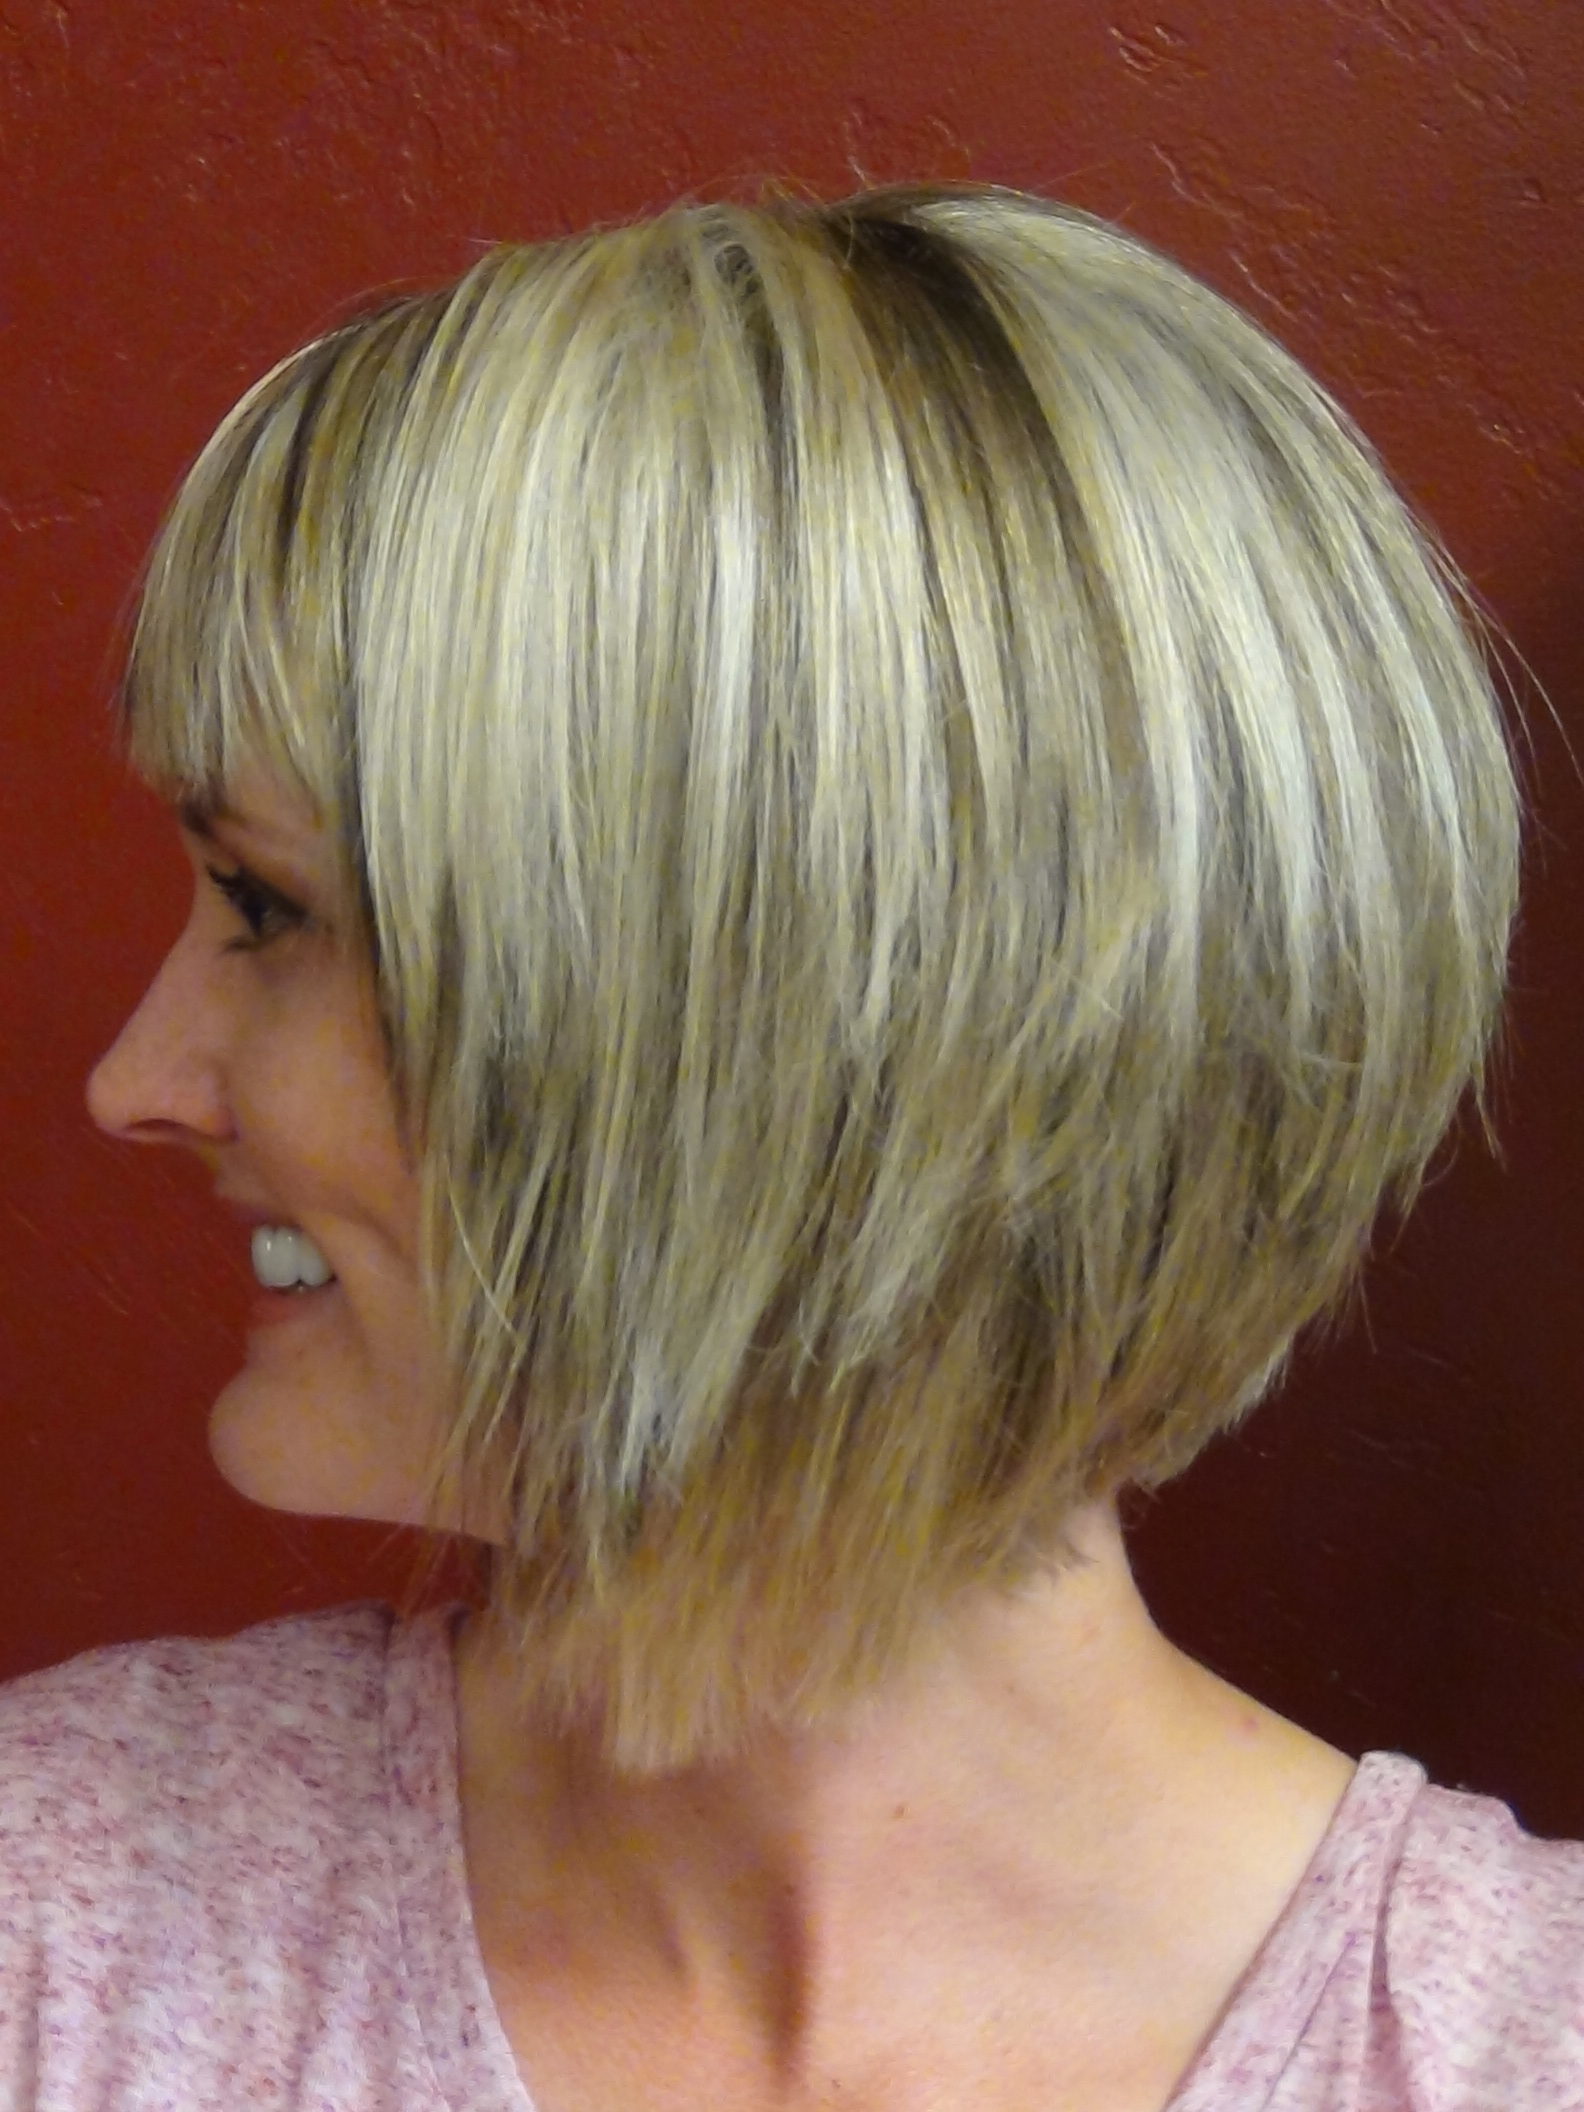 Short Stacked Bob Hairstyles – Hairstyle For Women & Man Regarding Stacked Bob Hairstyles With Bangs (View 14 of 20)